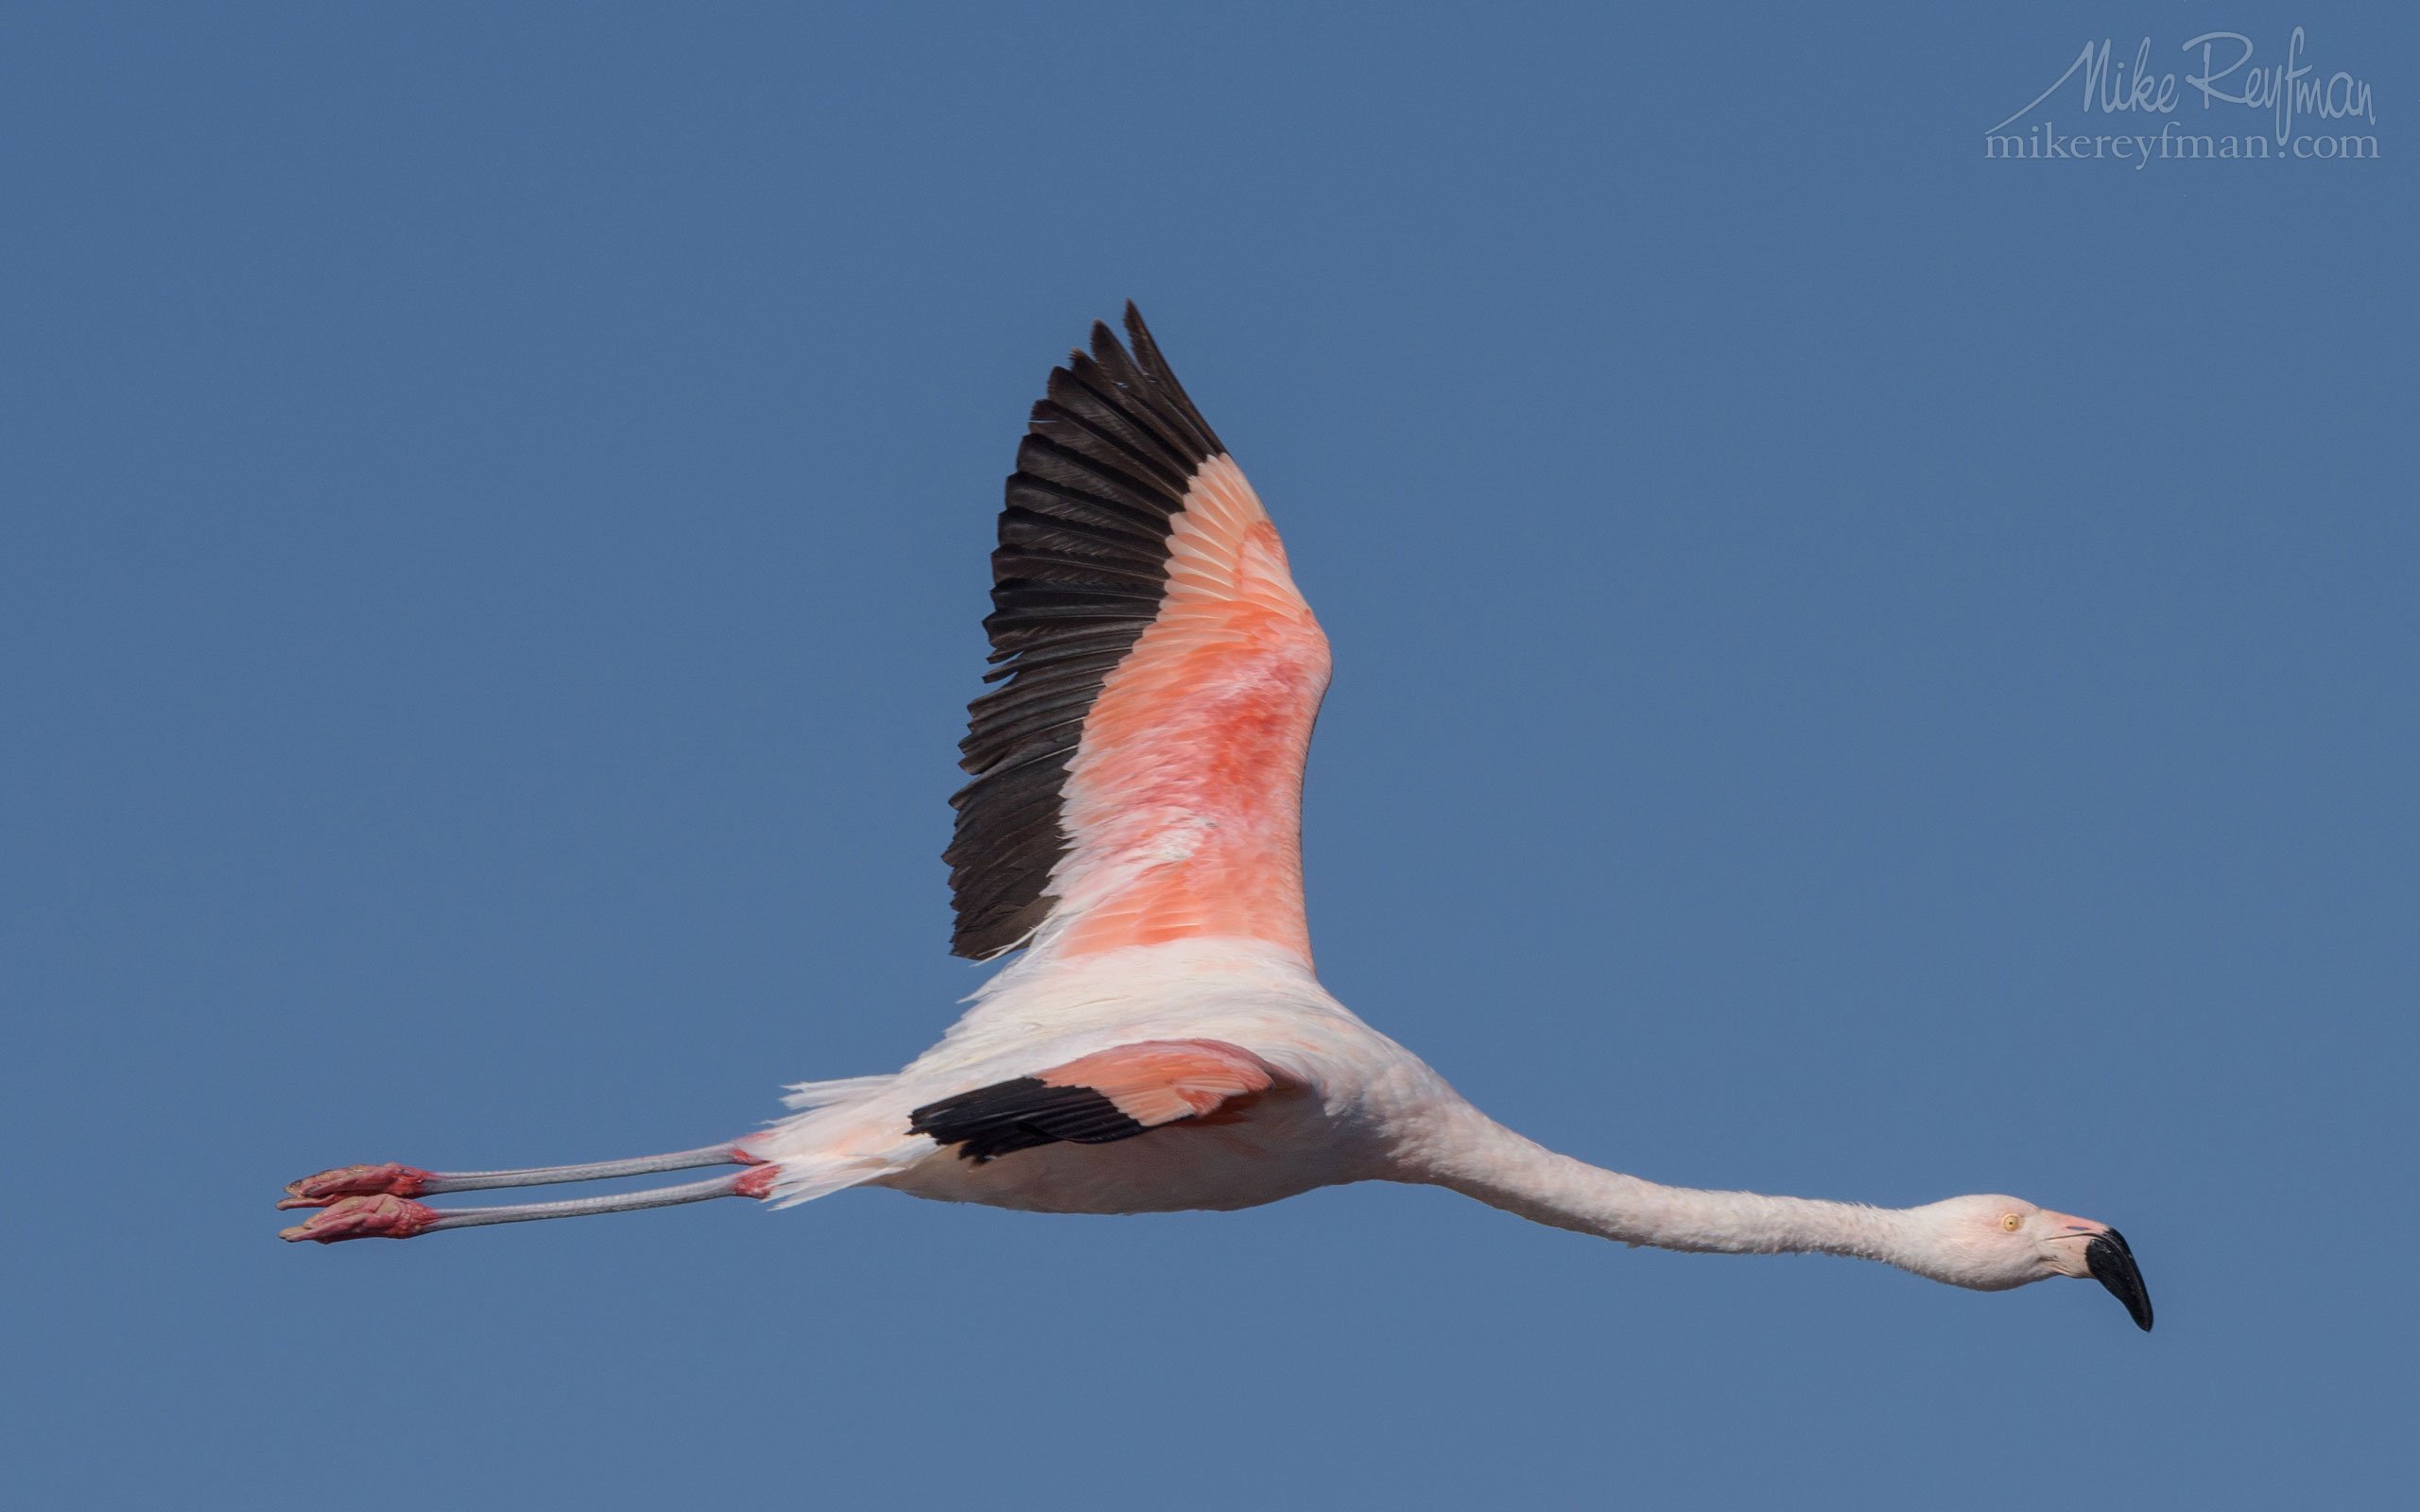 Chilean Flamingo (Phoenicopterus chilensis). Salar de Atacama, Laguna Chaxa, San Pedro de Atacama, Atacama Desert, Antofagasta Region, Chile AA1-D1D9441 - Atacama and Altiplano. The Driest Desert and The High Plain - Mike Reyfman Photography